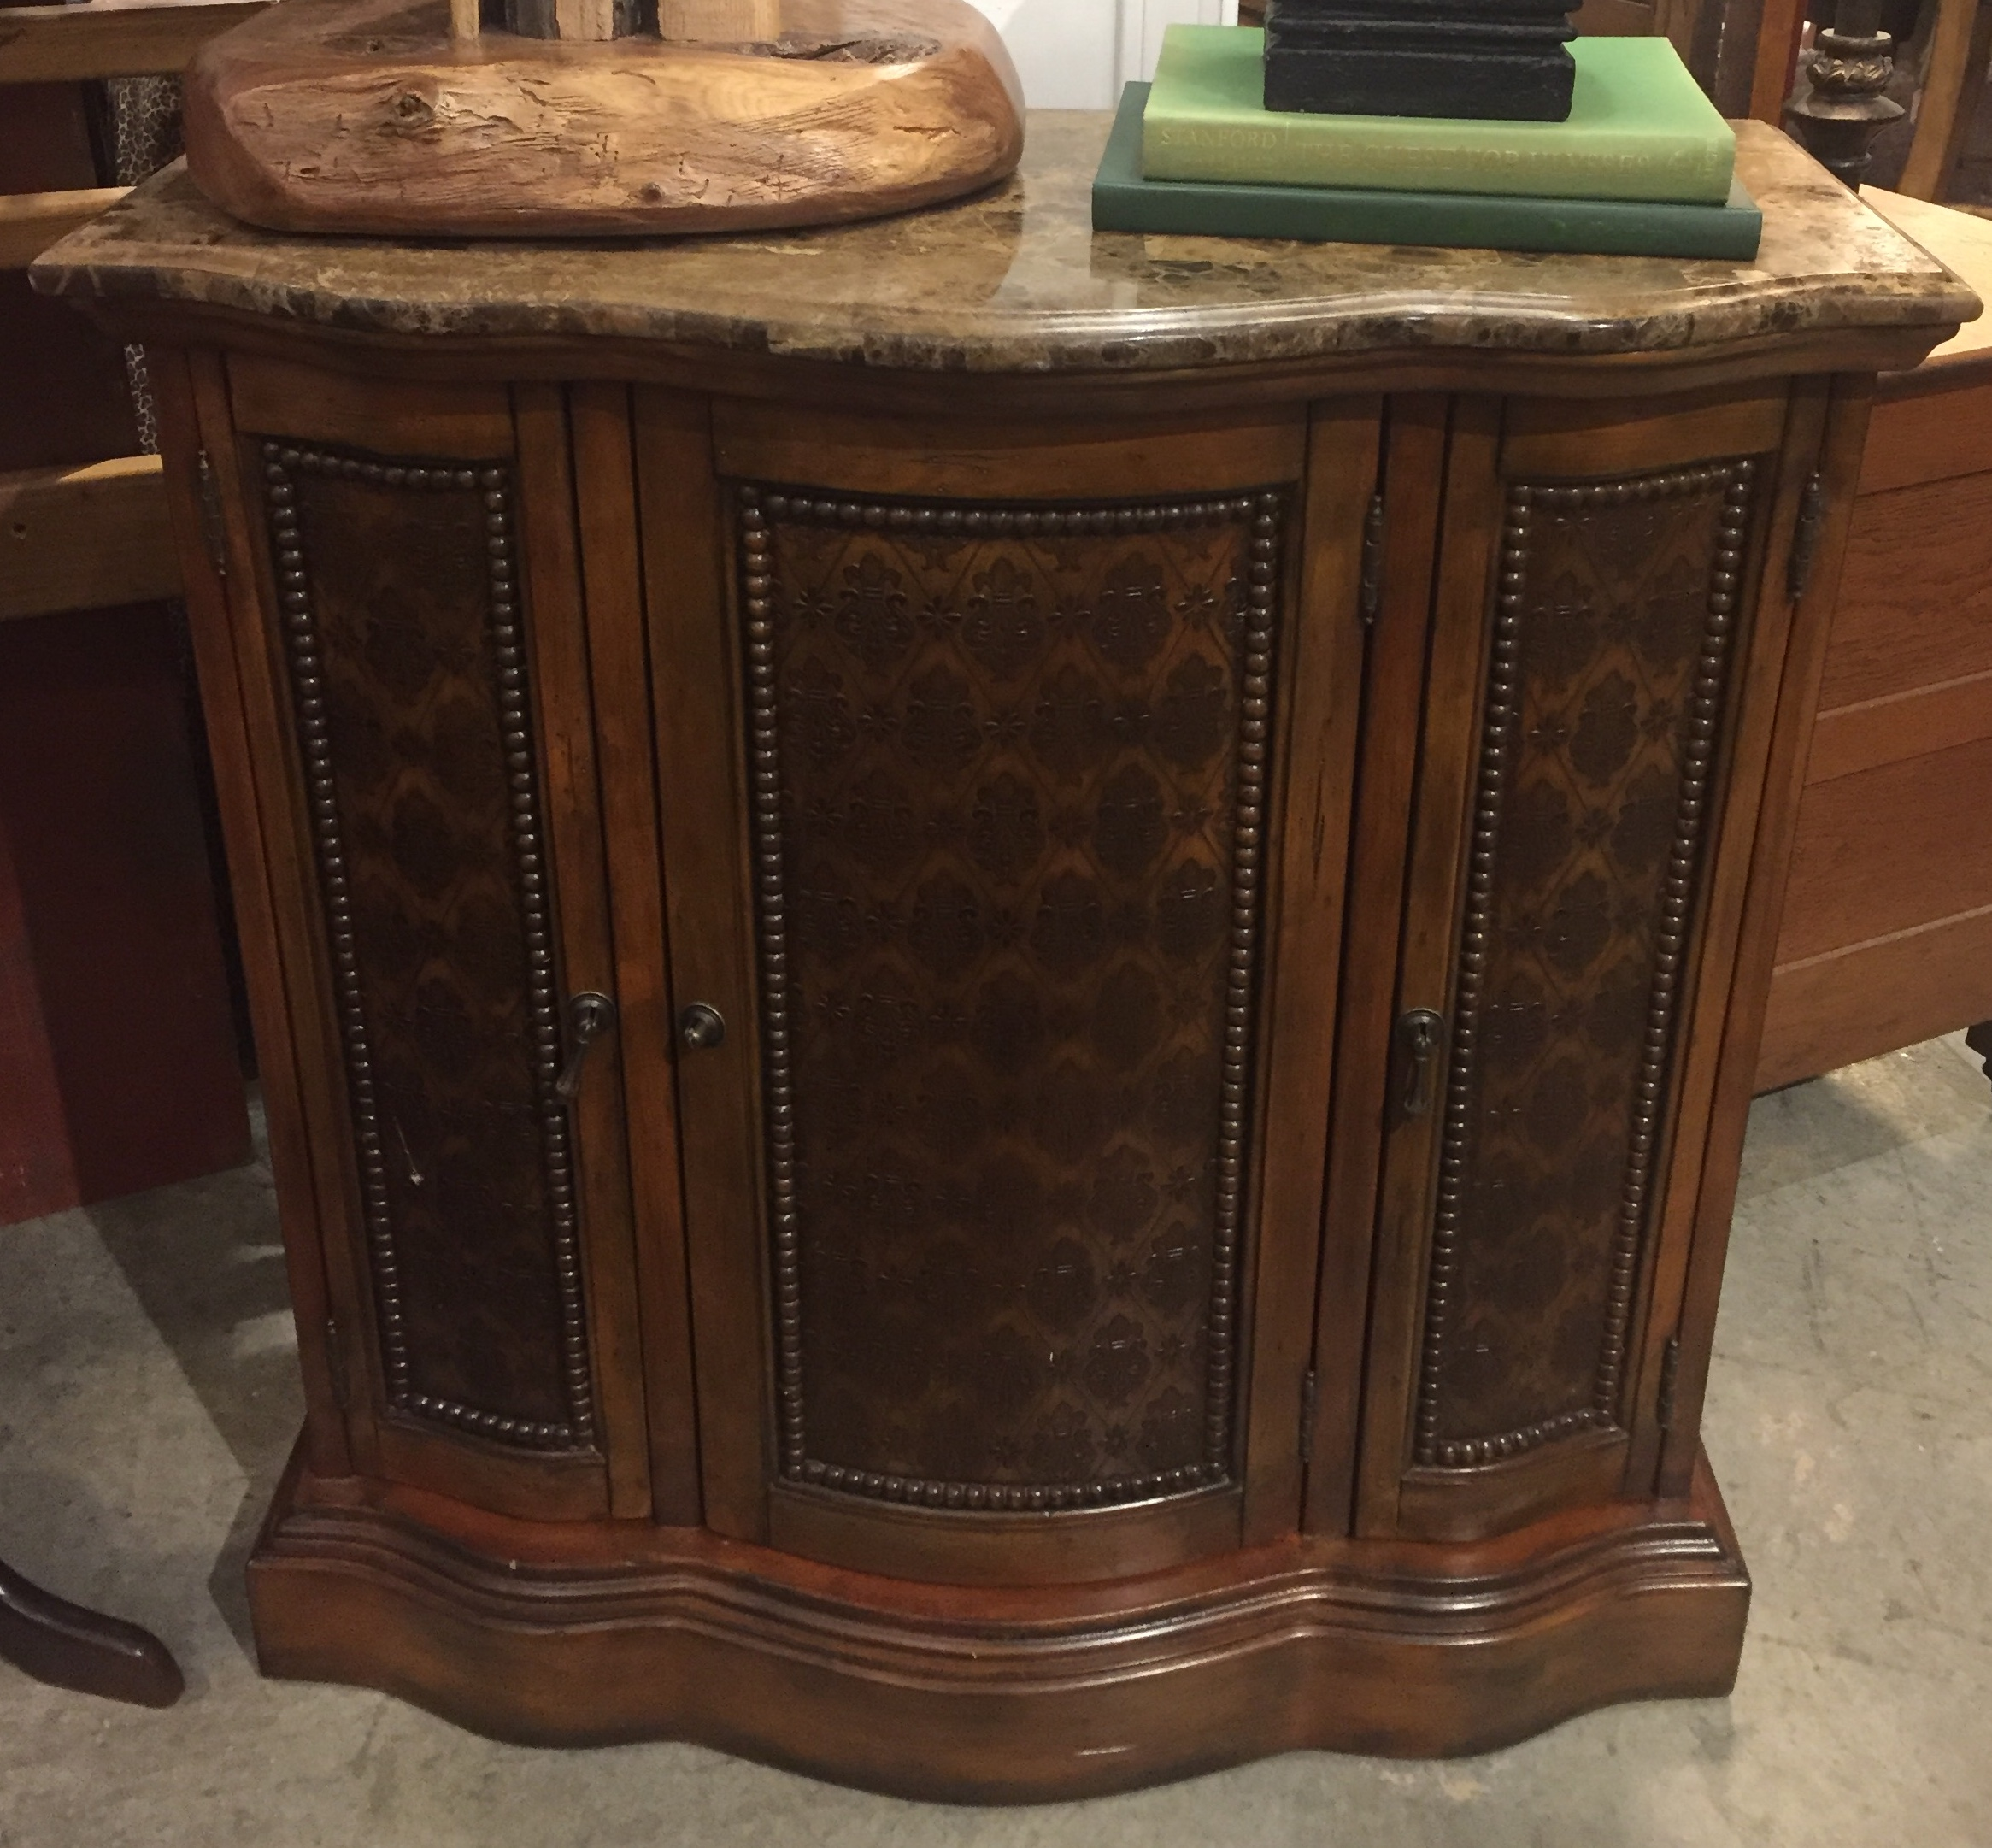 Marble Top Entry Cabinet $189.95 - C1108 24331